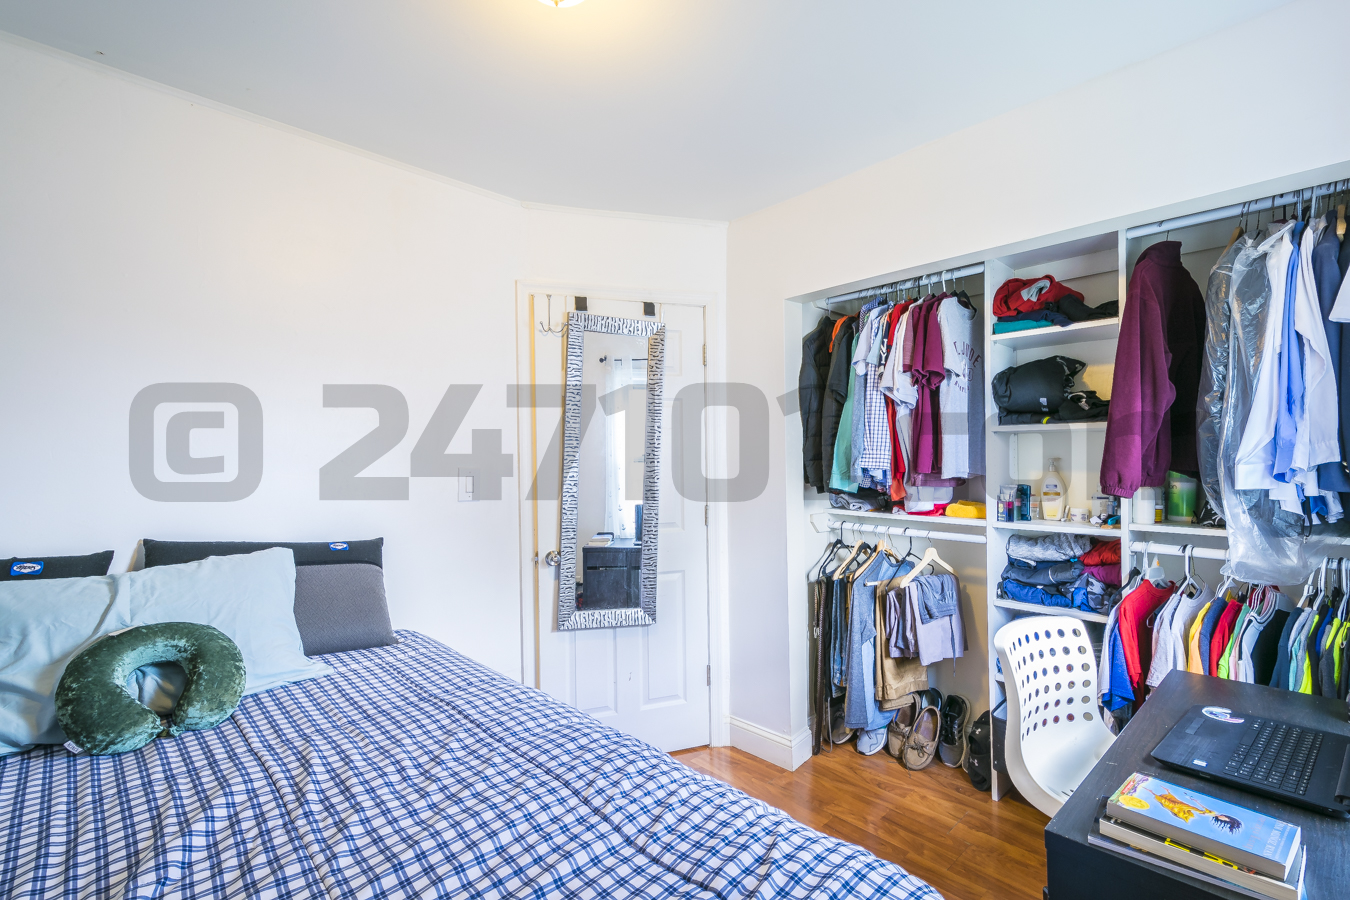 247101.com - Real Estate Photography